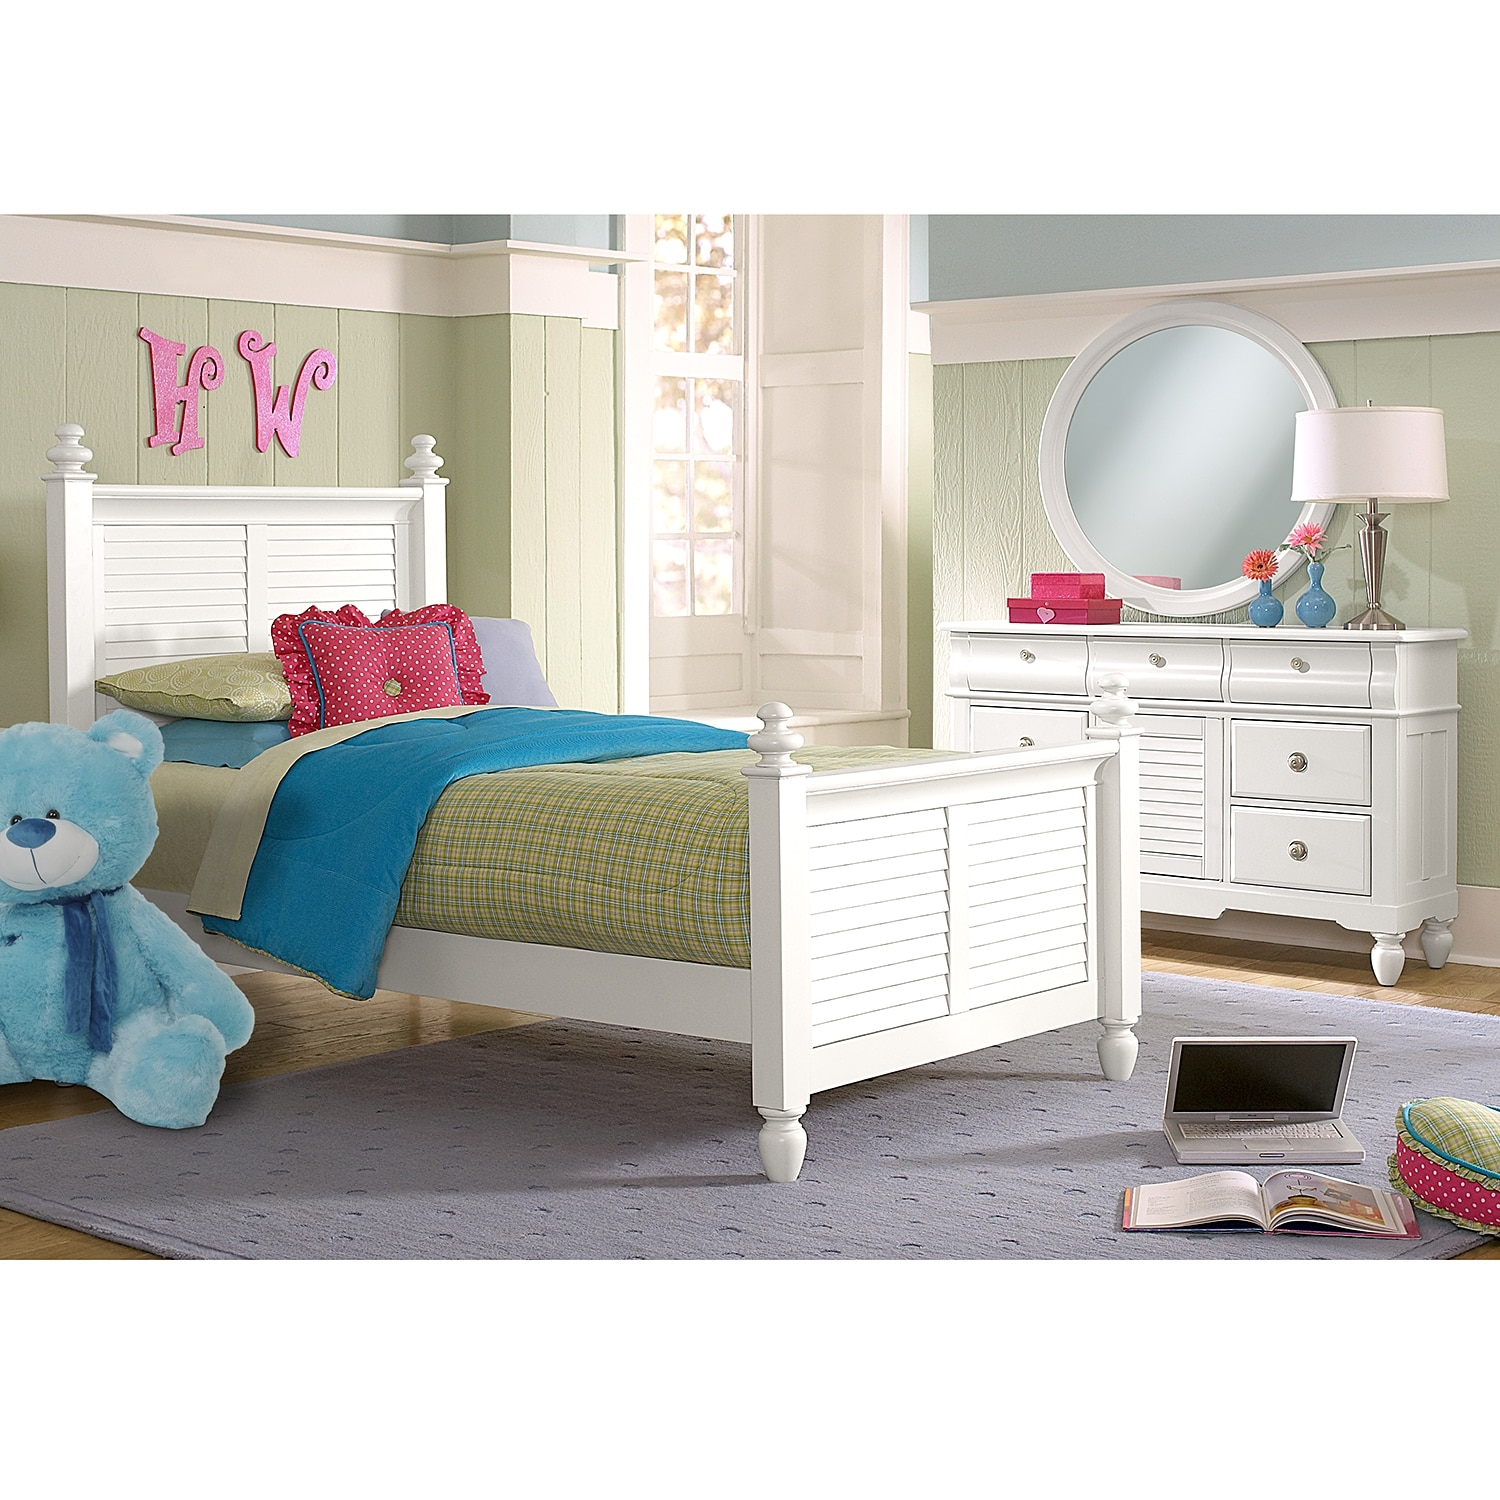 shop 5 piece bedroom sets value city furniture 17688 | 277663 fit inside 7c320 320 composite to center center 7c320 320 background color white